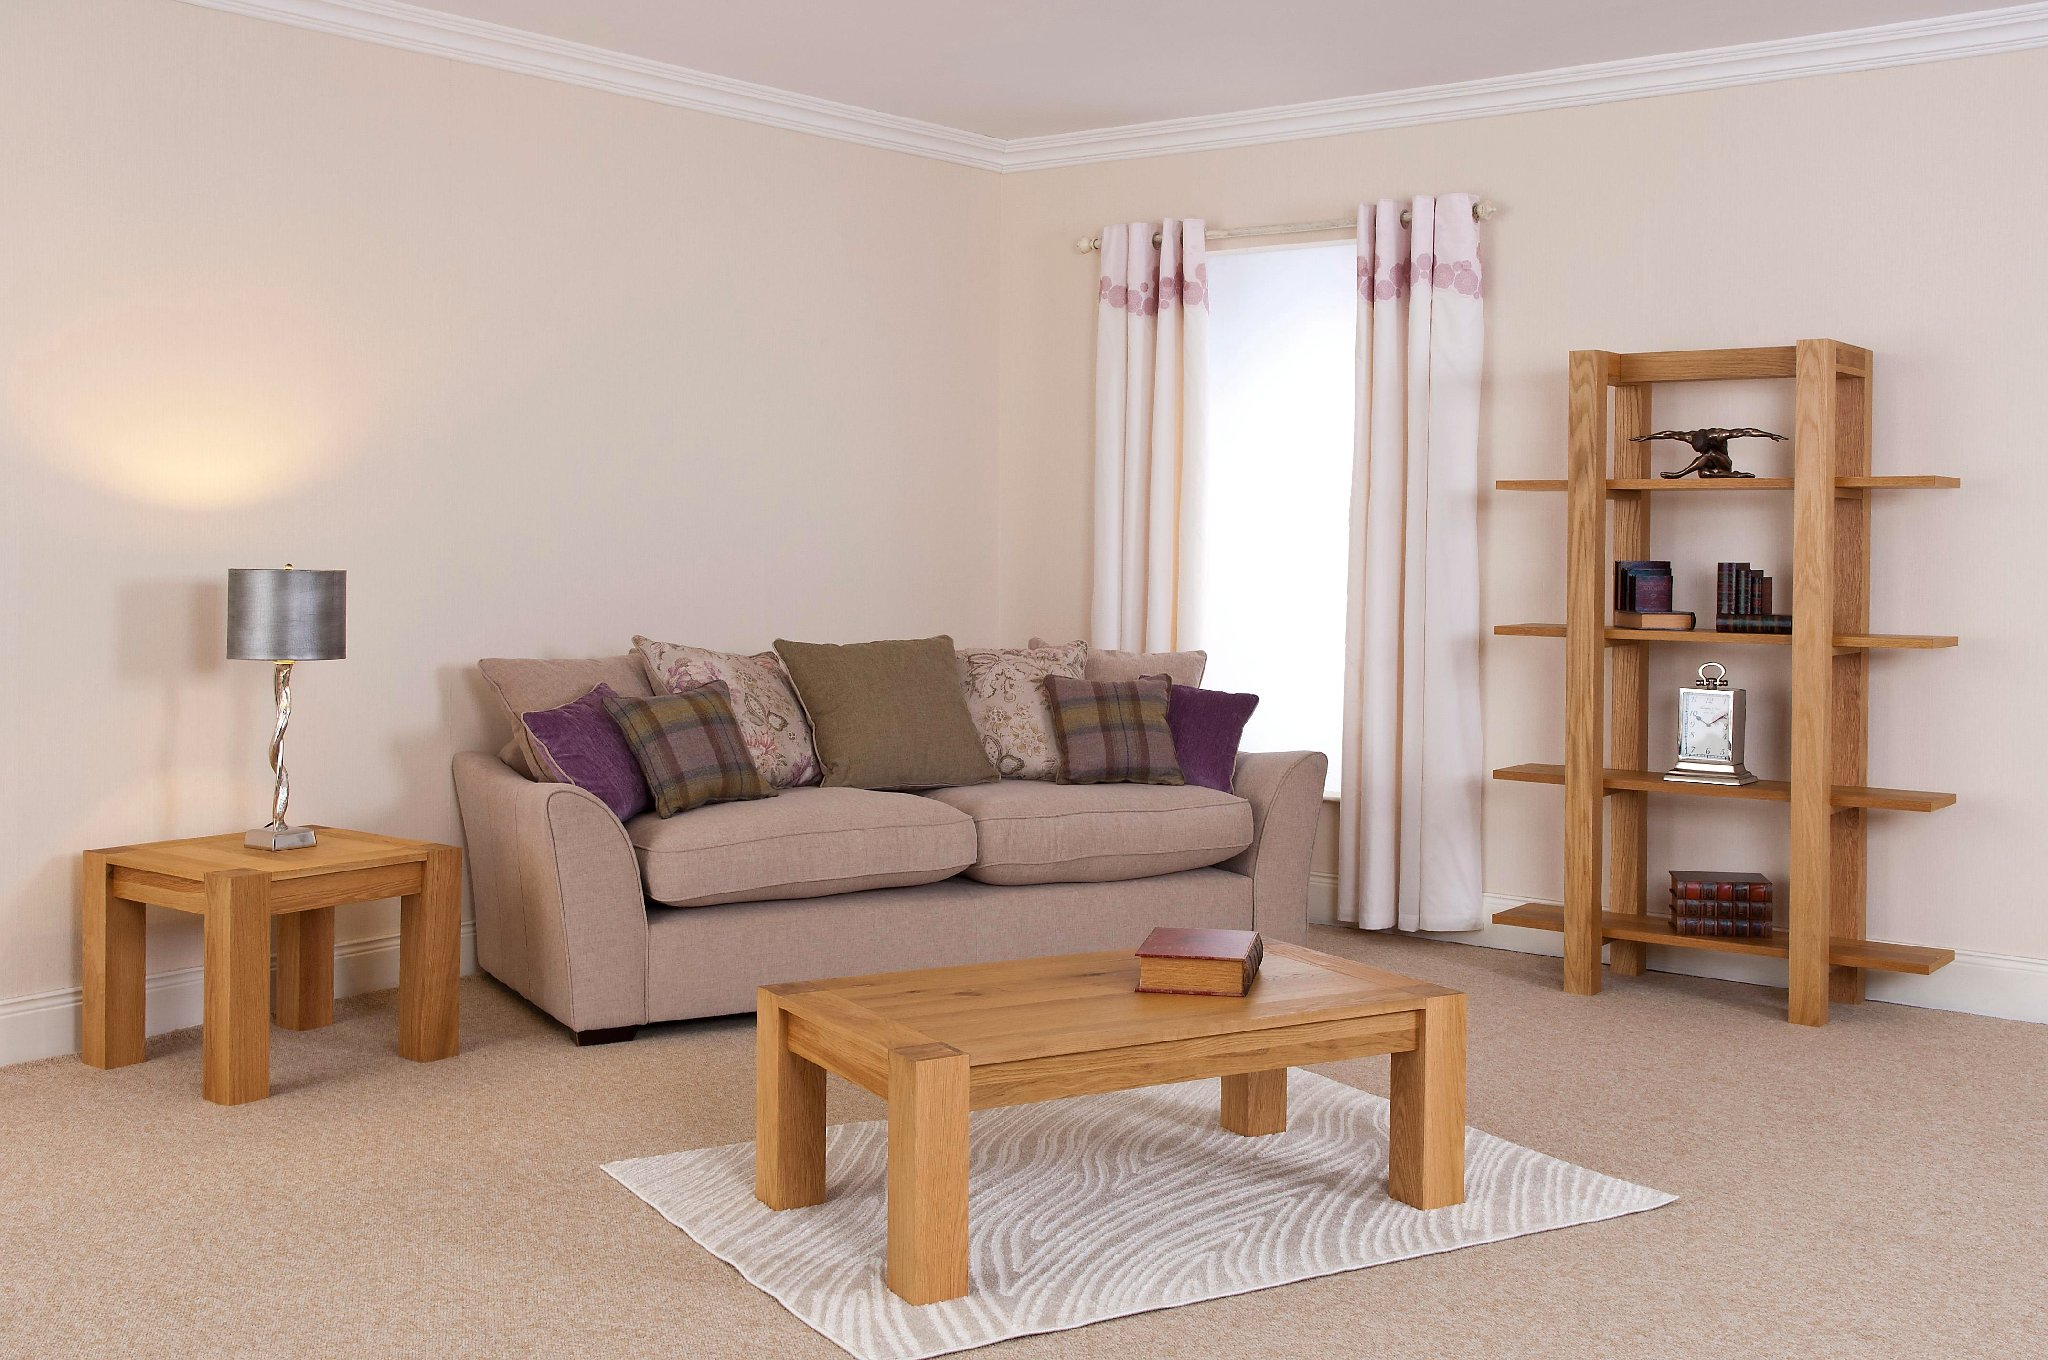 Creations Interiors Ltd Furniture For Home And Office In